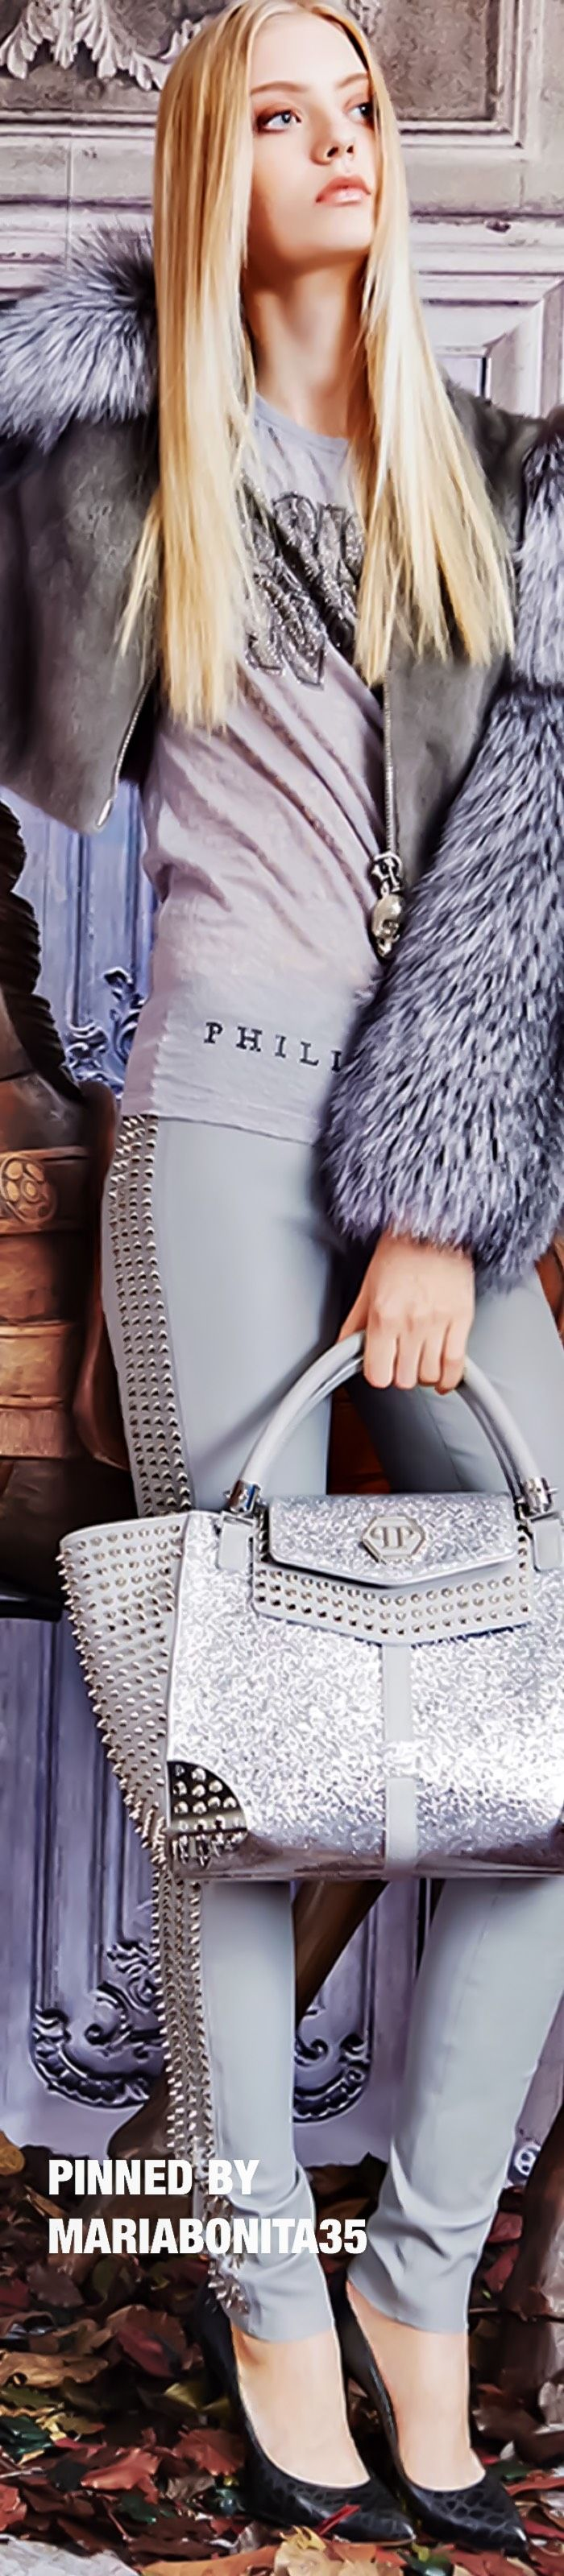 Phillipp Plein Pre-Fall 2015-16